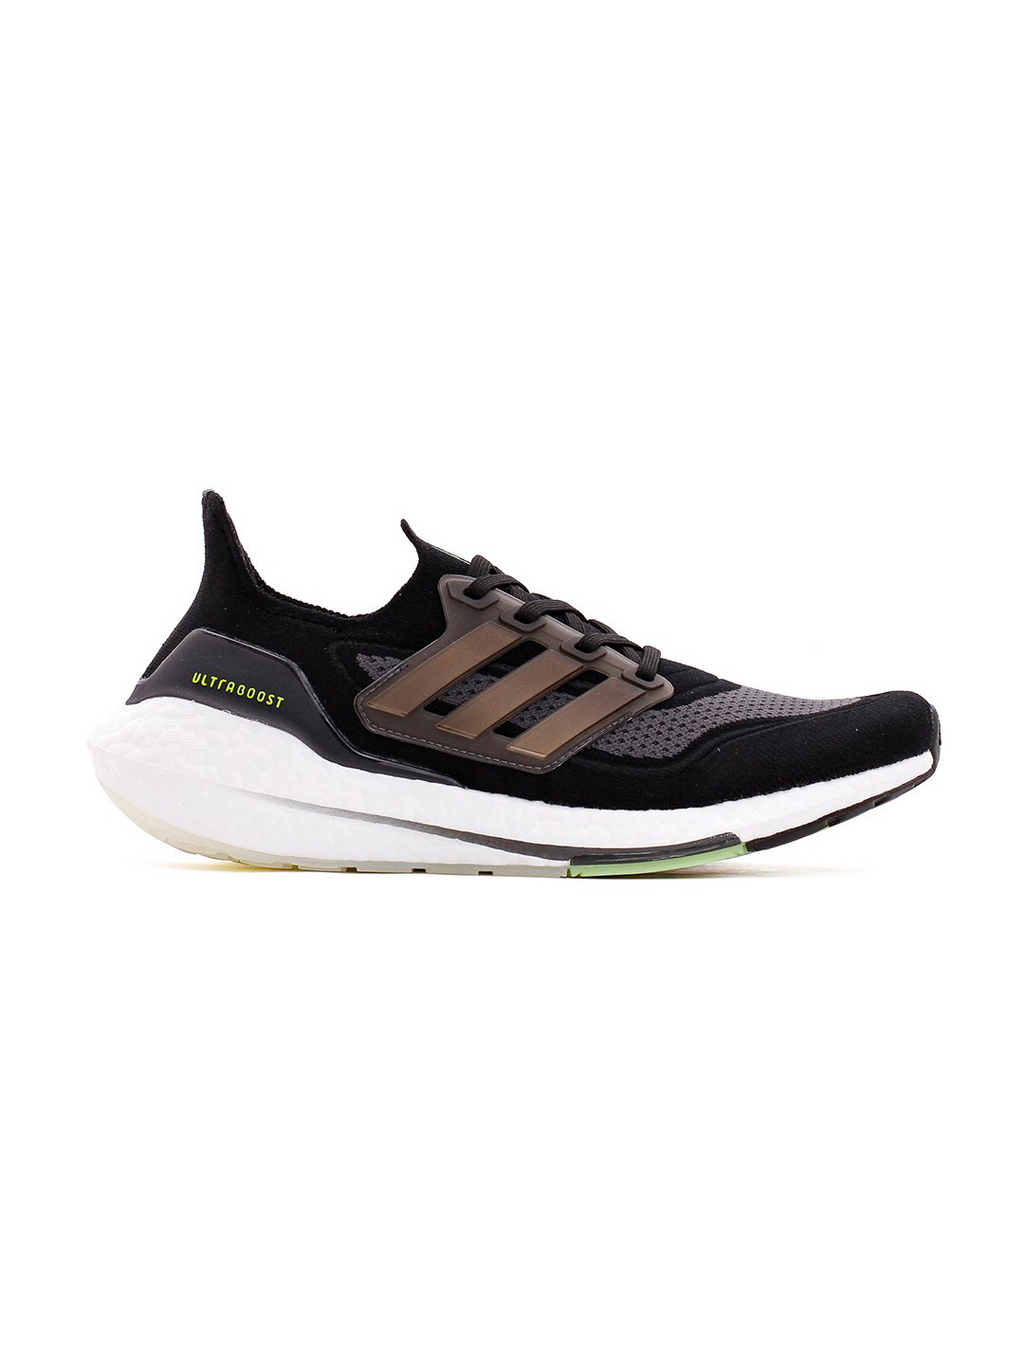 Multi Running Men Ultraboost 21 Sneakers